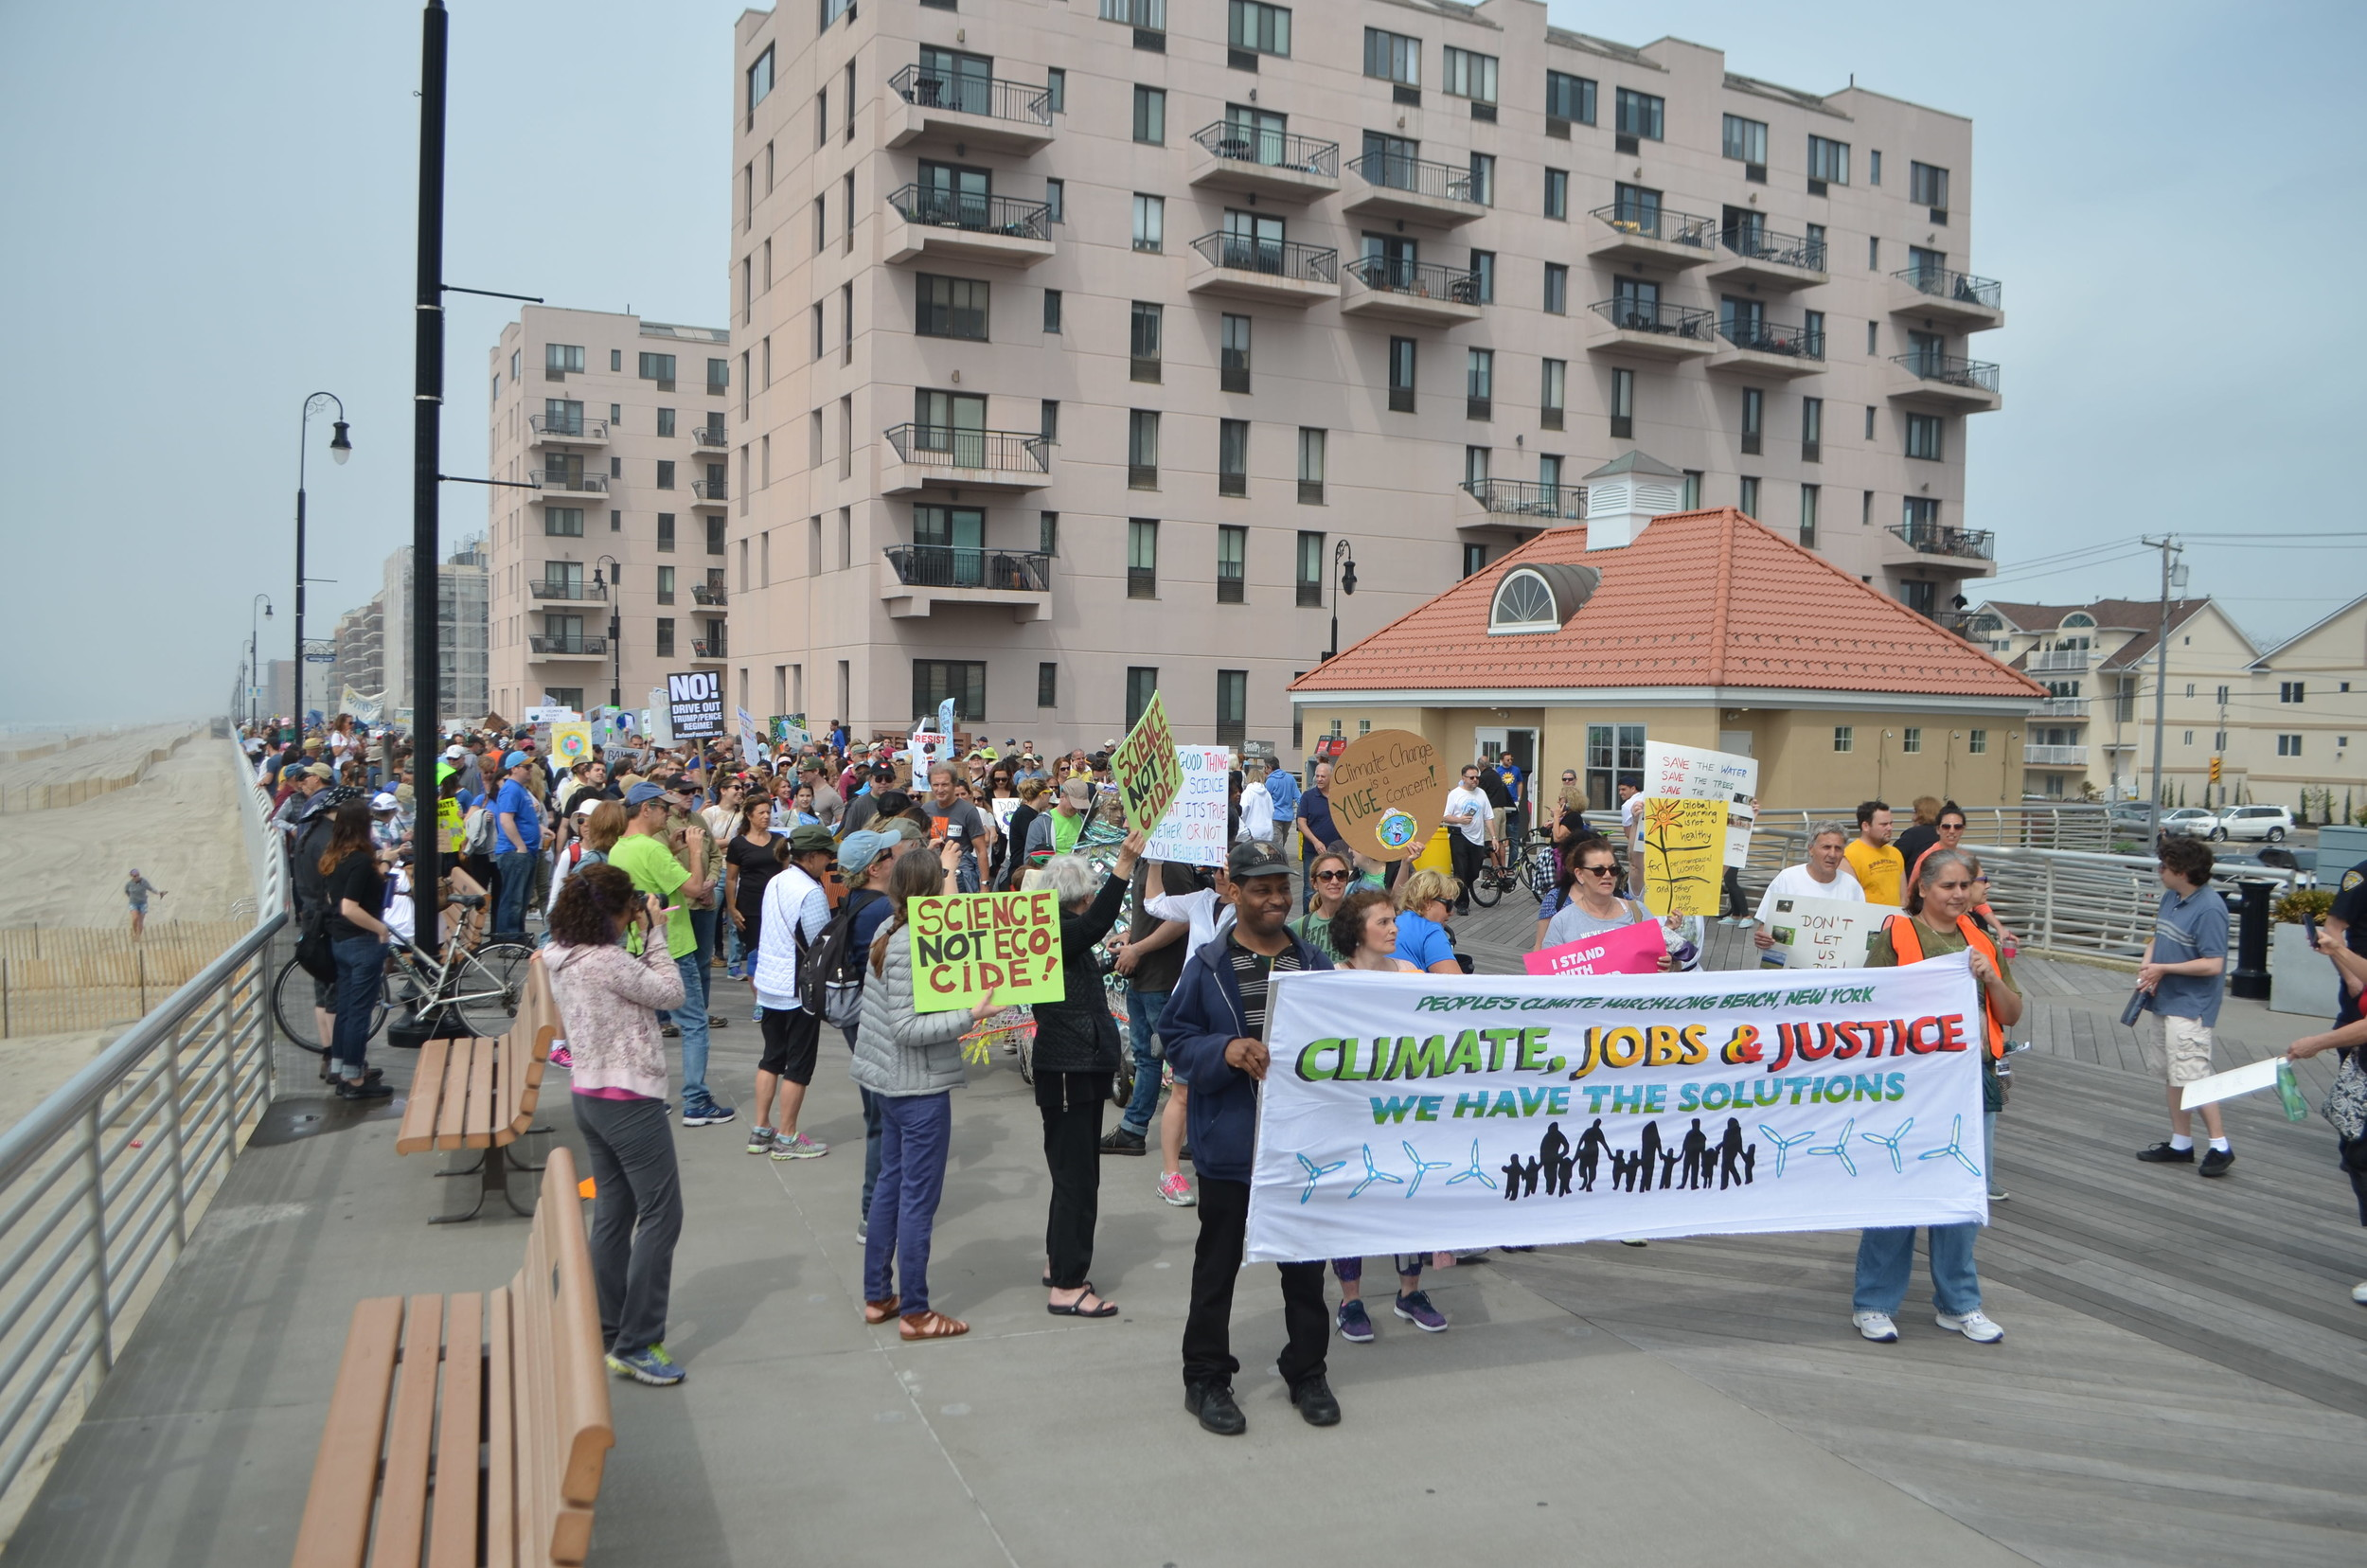 The march, which attracted about 700 people, began at National Boulevard and finished at the east end of the boardwalk.